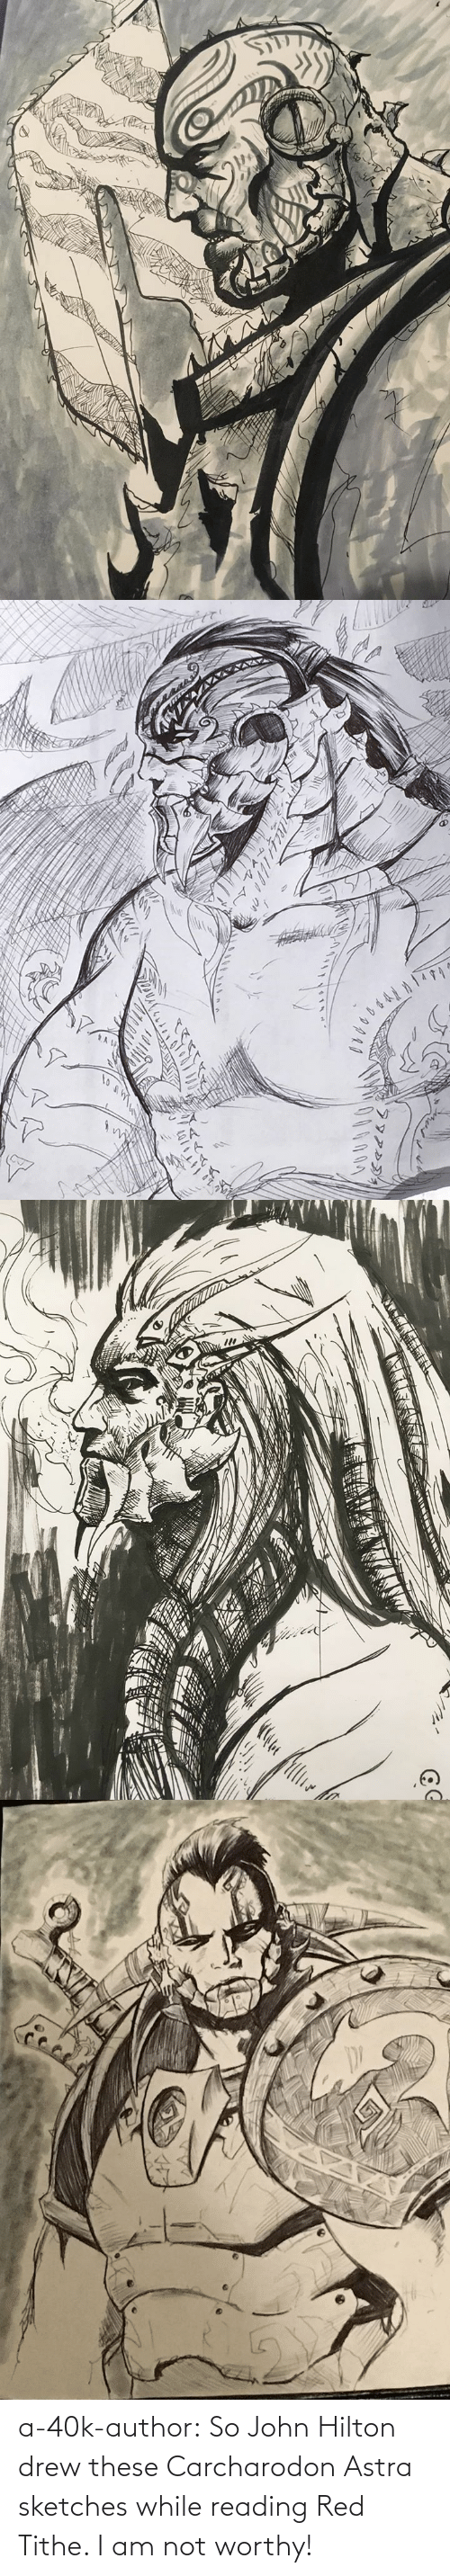 Am Not: a-40k-author:  So John Hilton drew these Carcharodon Astra sketches while reading Red Tithe. I am not worthy!